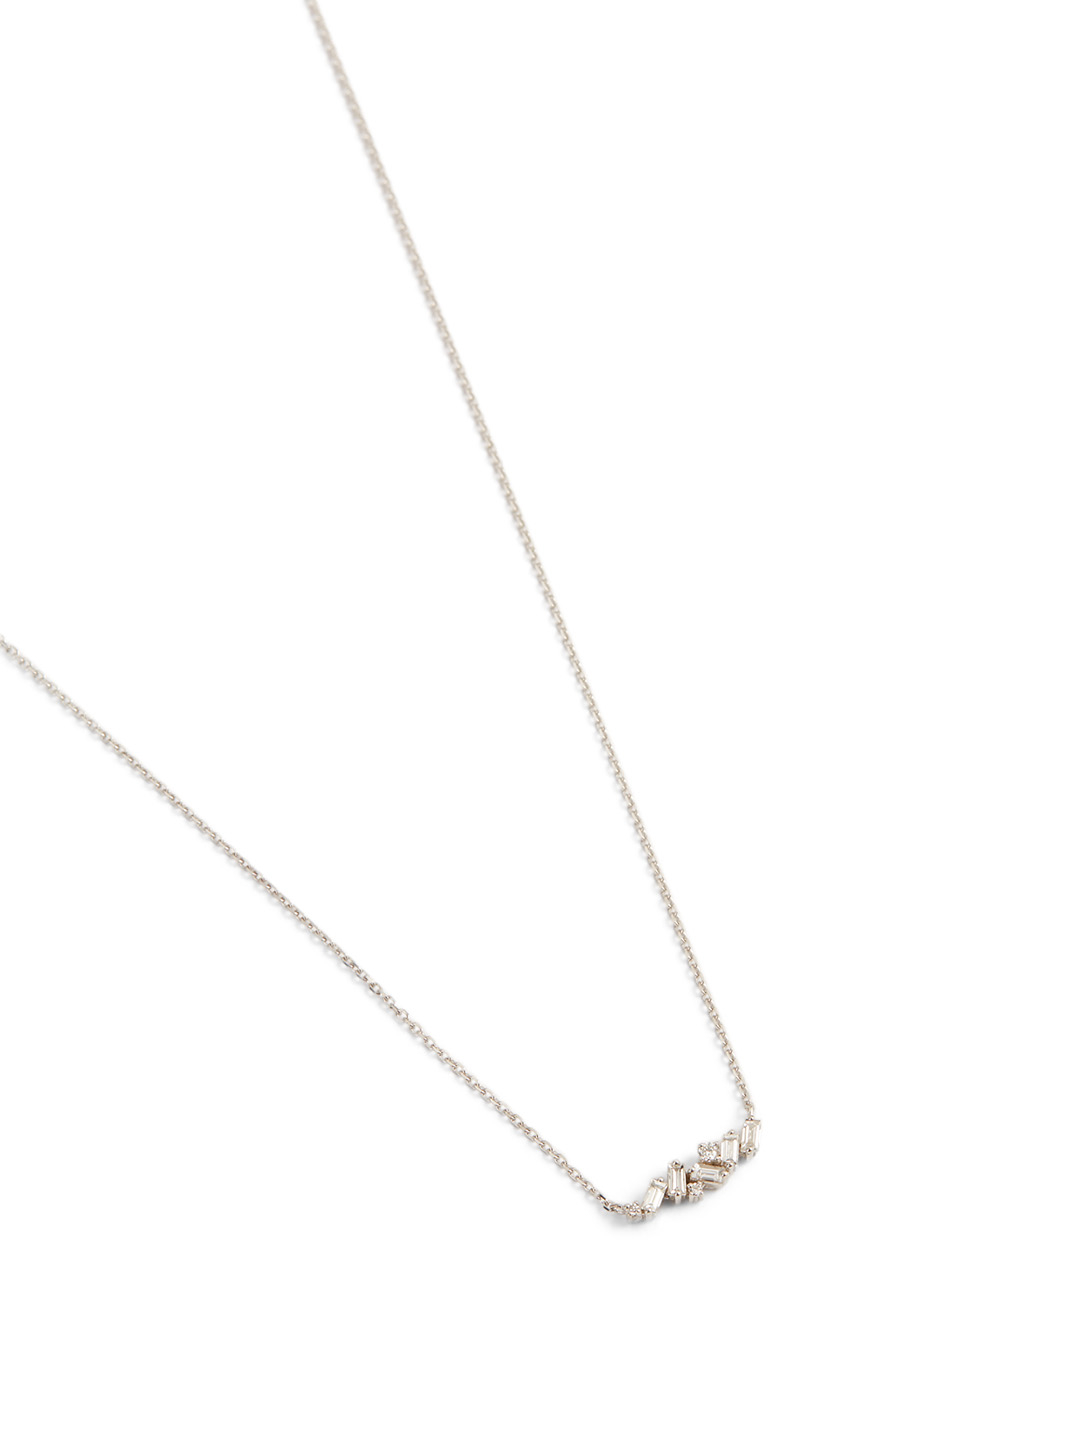 SUZANNE KALAN Large Fireworks 18K White Gold Mixed Bar Necklace With Diamonds Women's Metallic